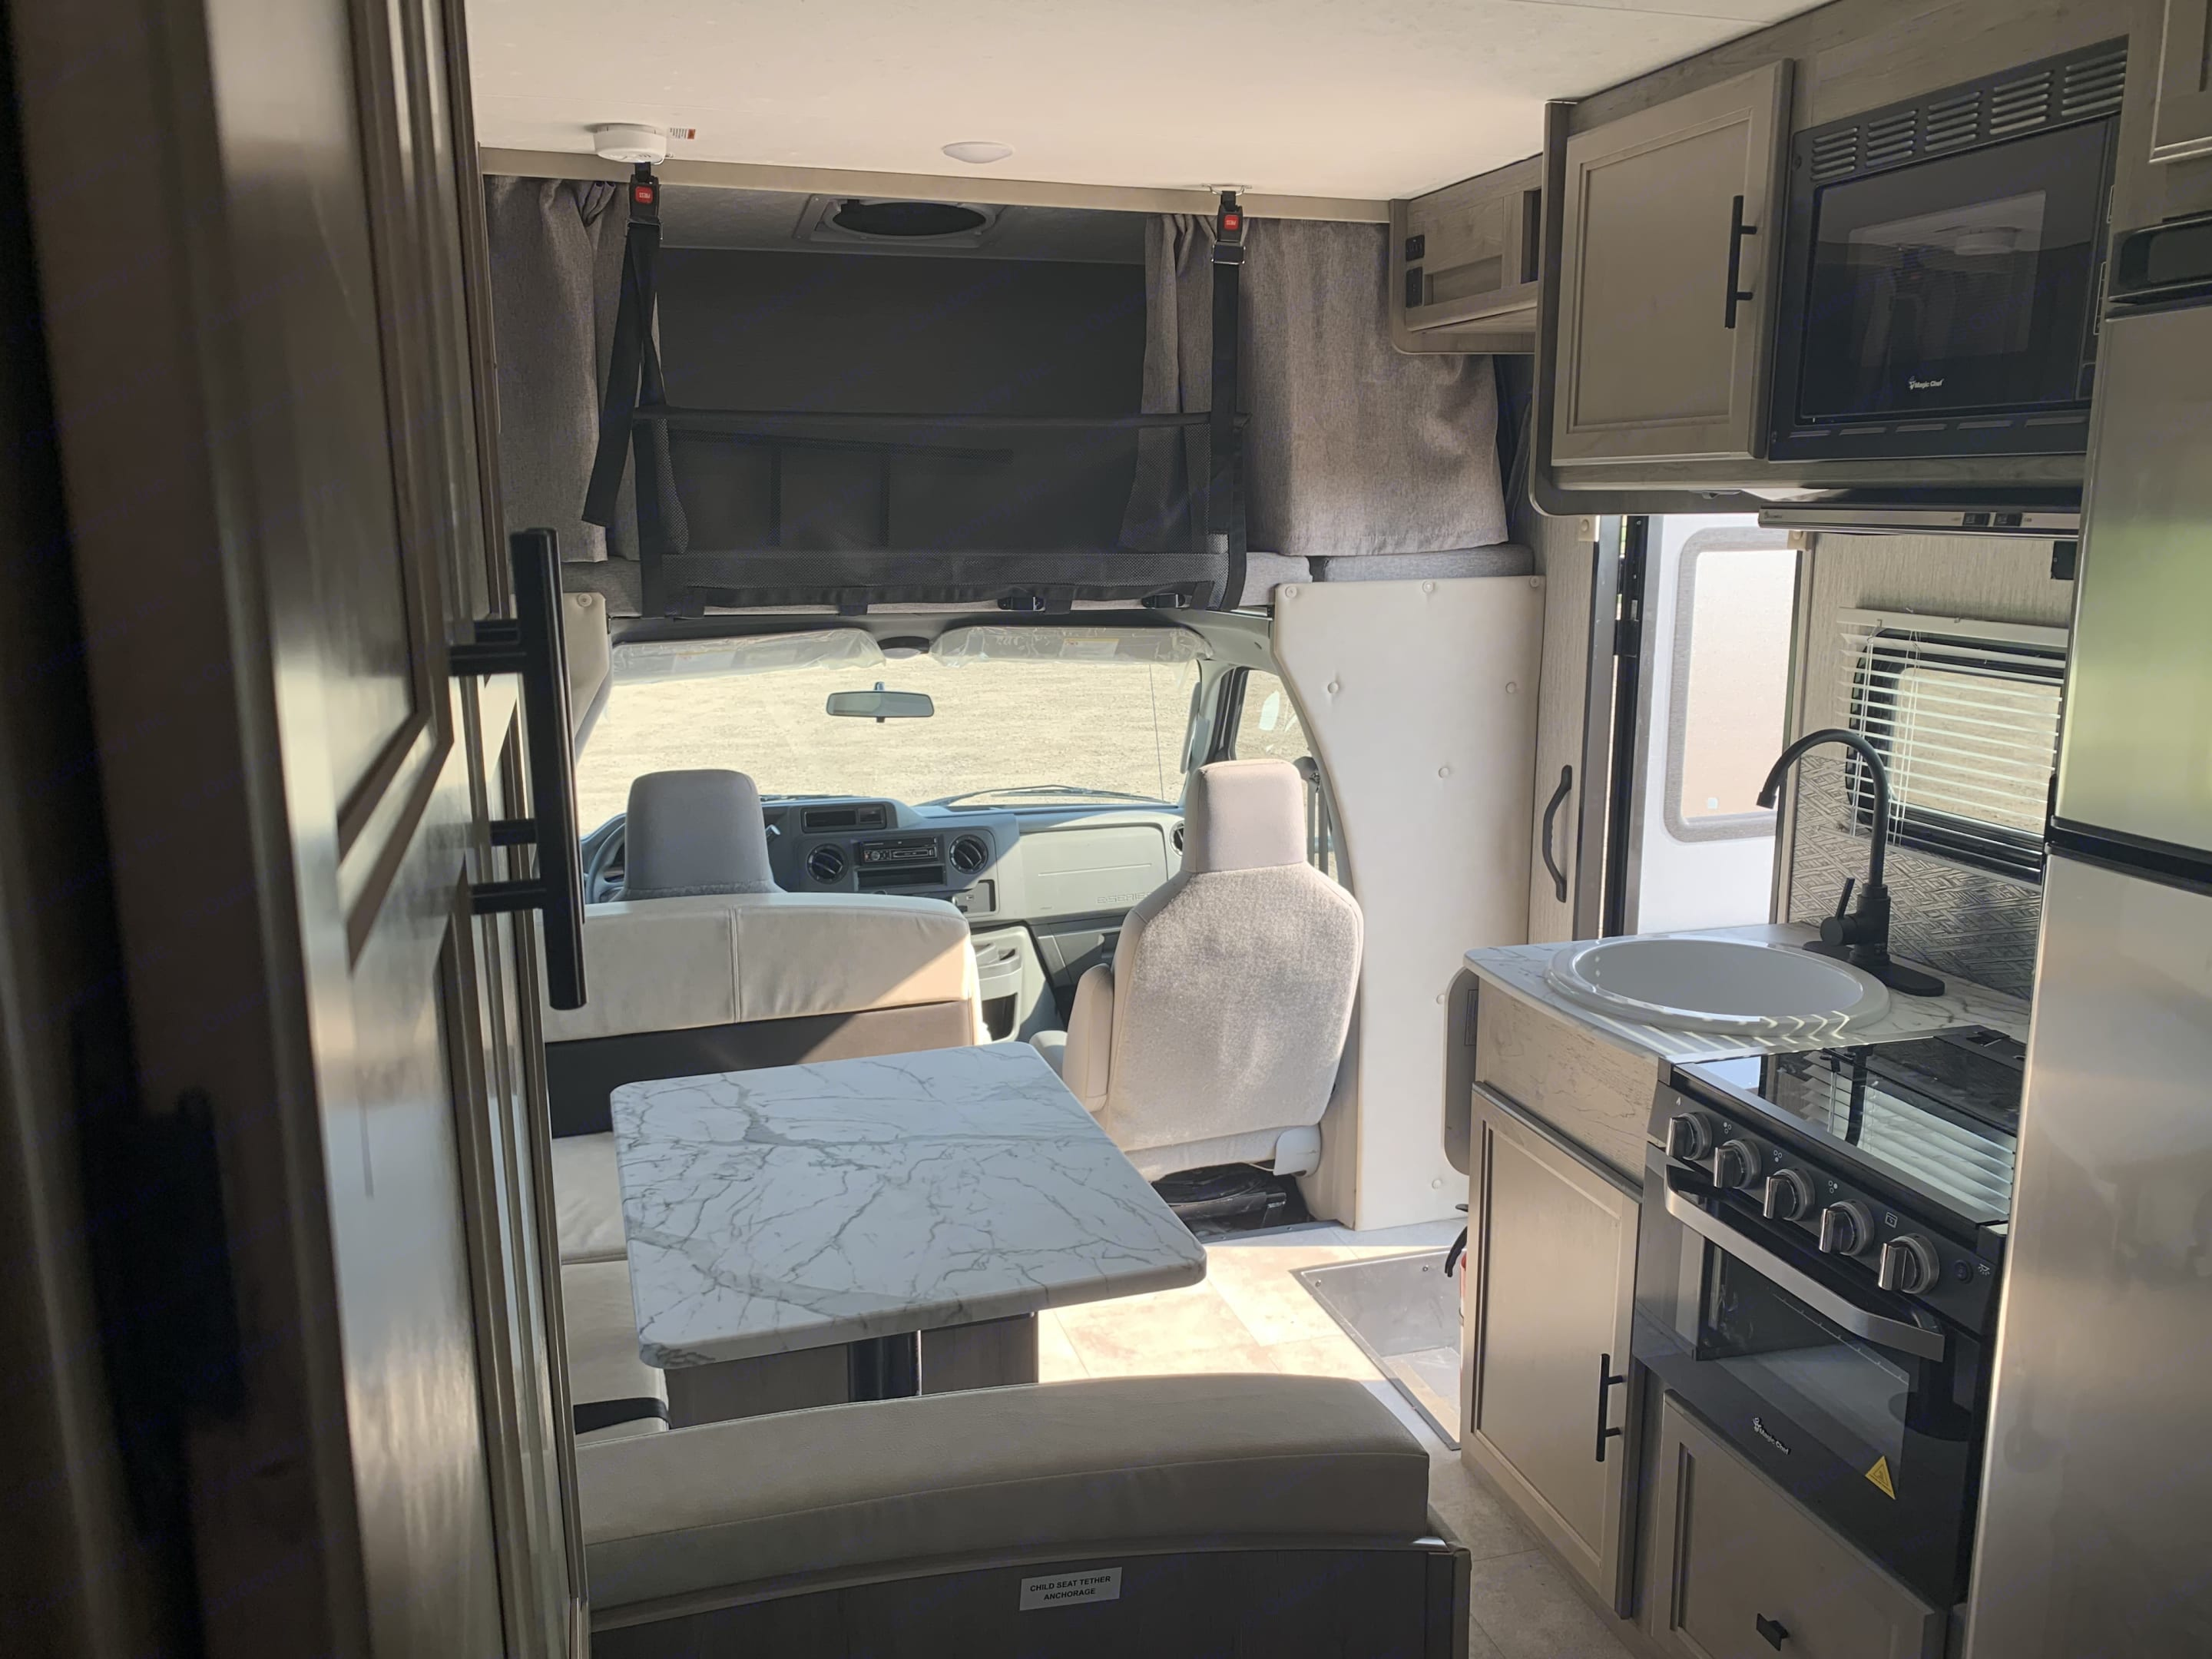 3 burner stove, large refrigerator, microwave, sink, and dinette. . Coachmen Cross Trail 2021